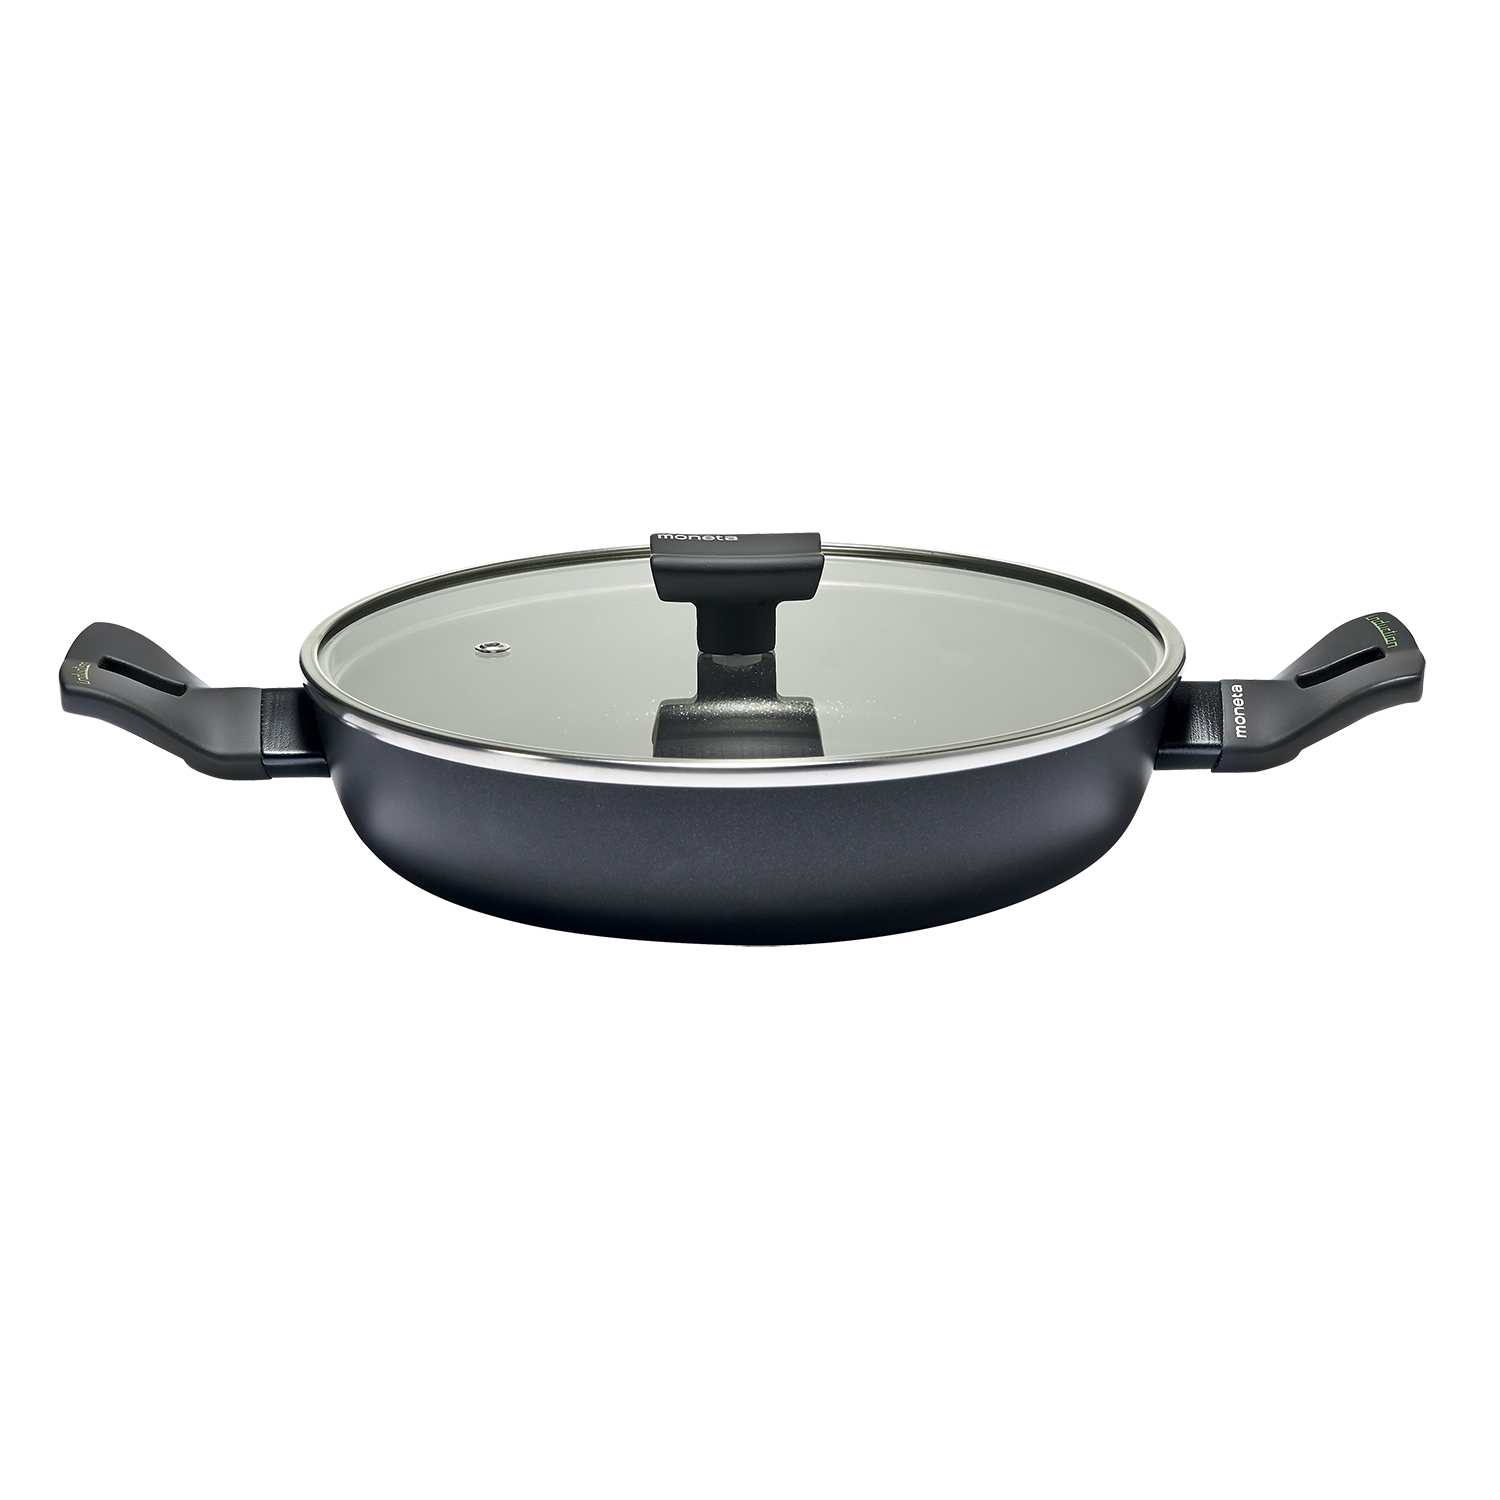 Moneta Nova Induction 10 Inch Sauté Casserole Pan